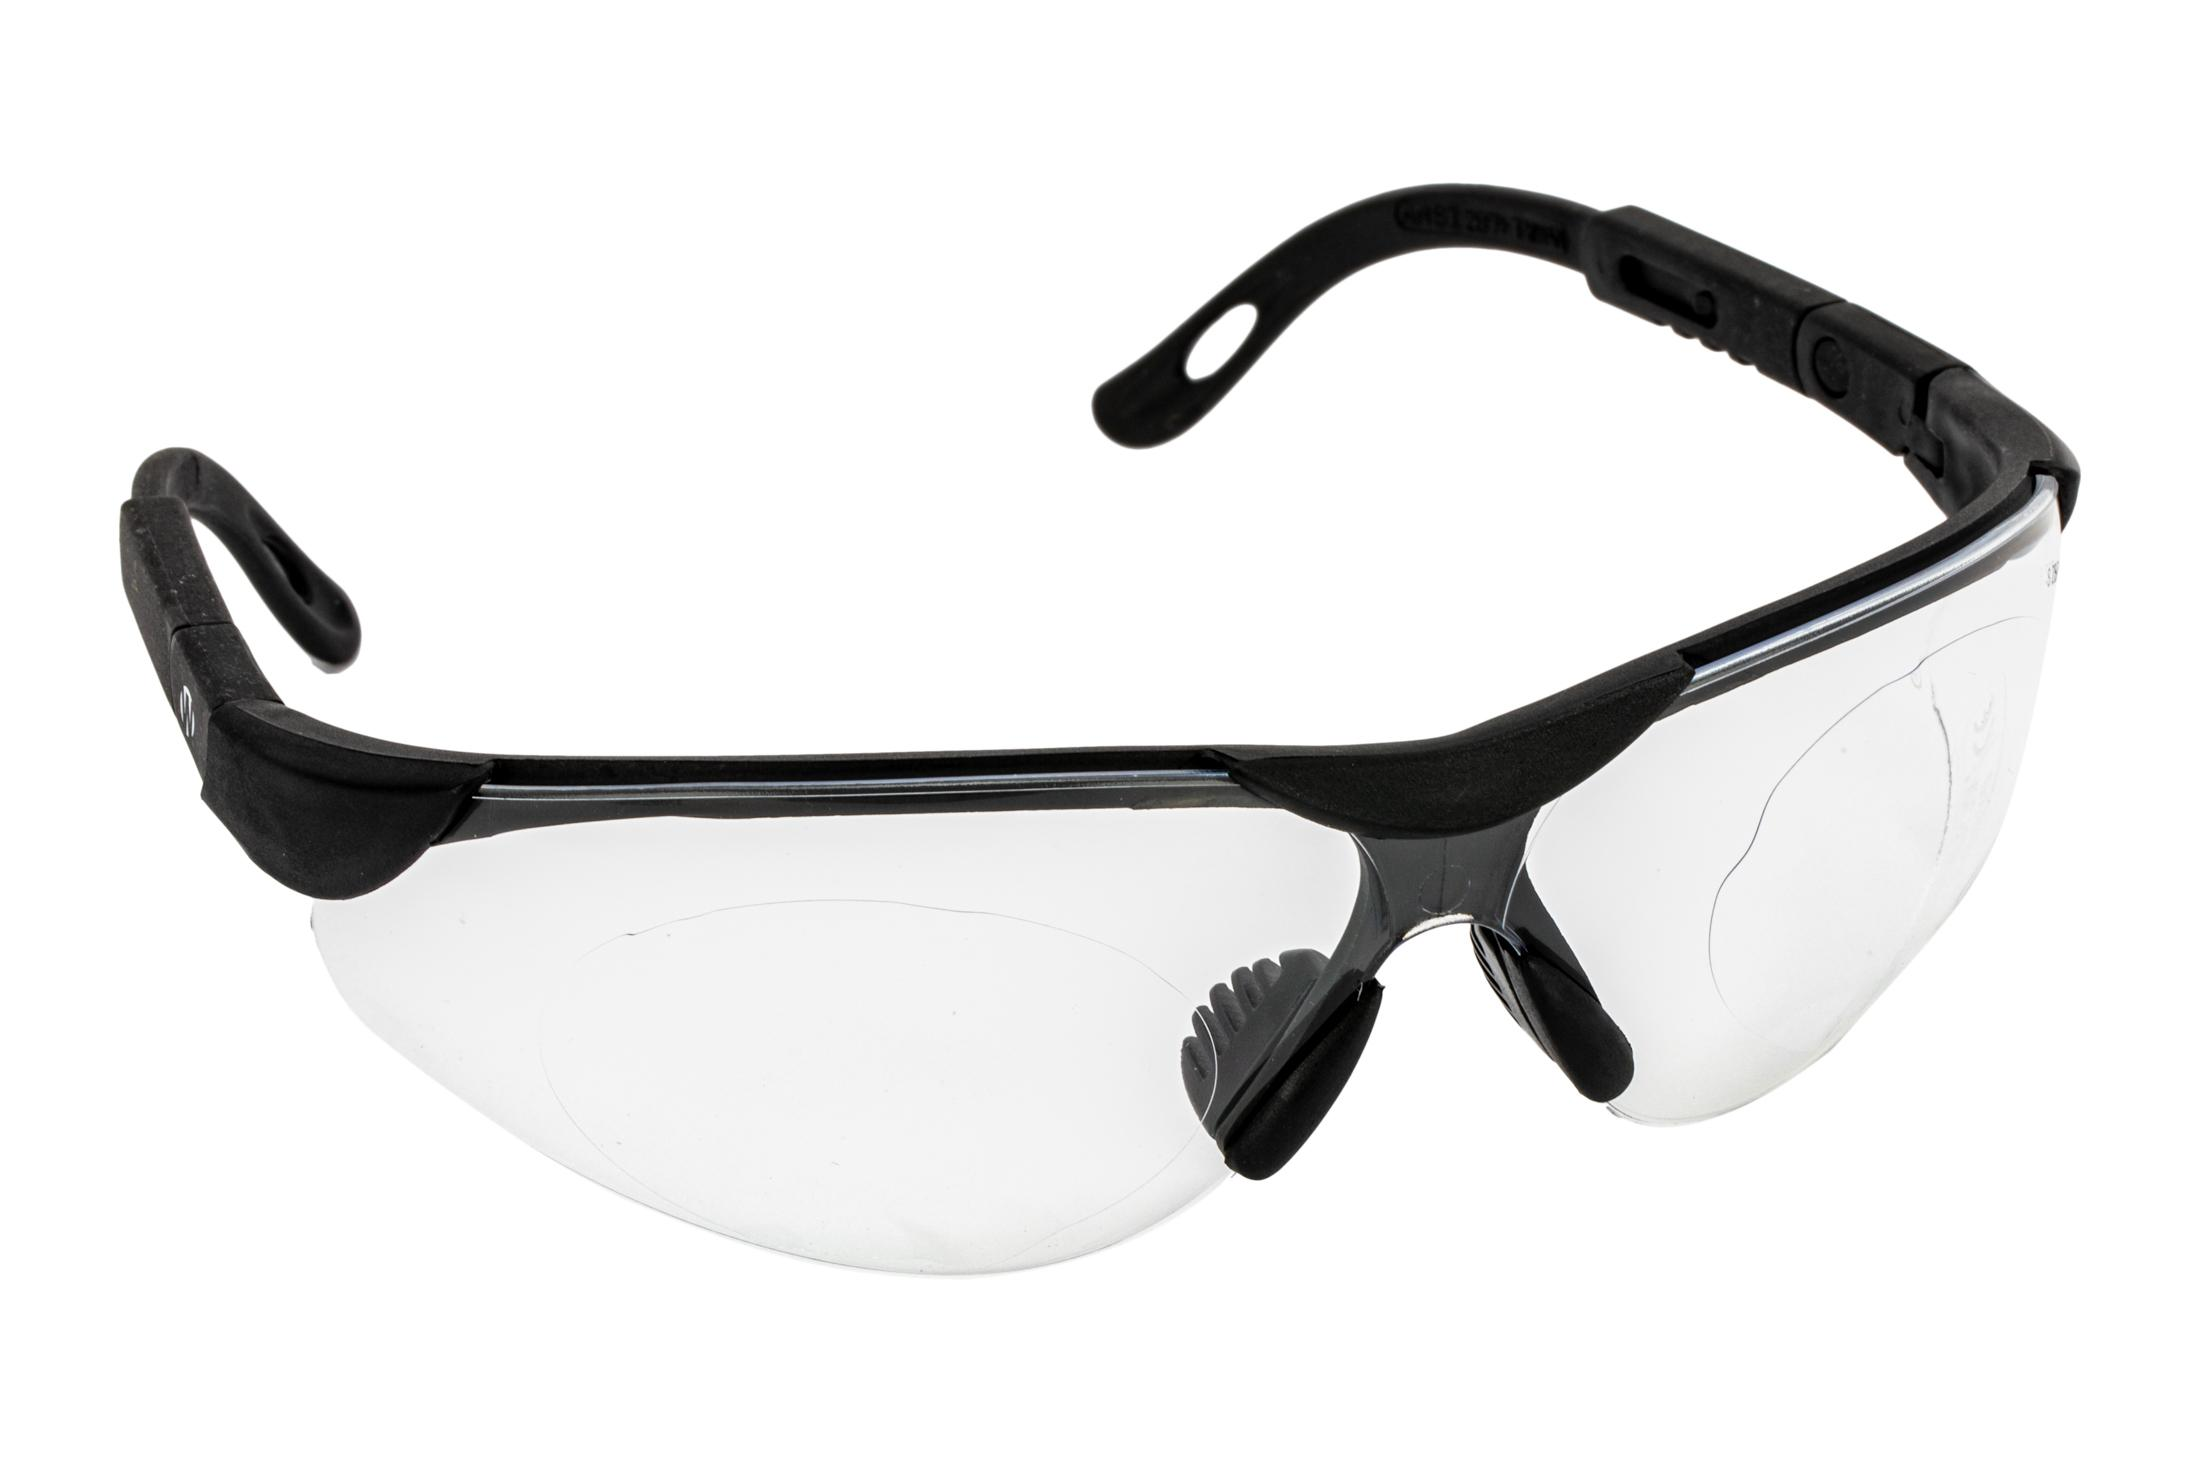 The Walkers elite sport safety glasses with clear lens features a black polymer frame